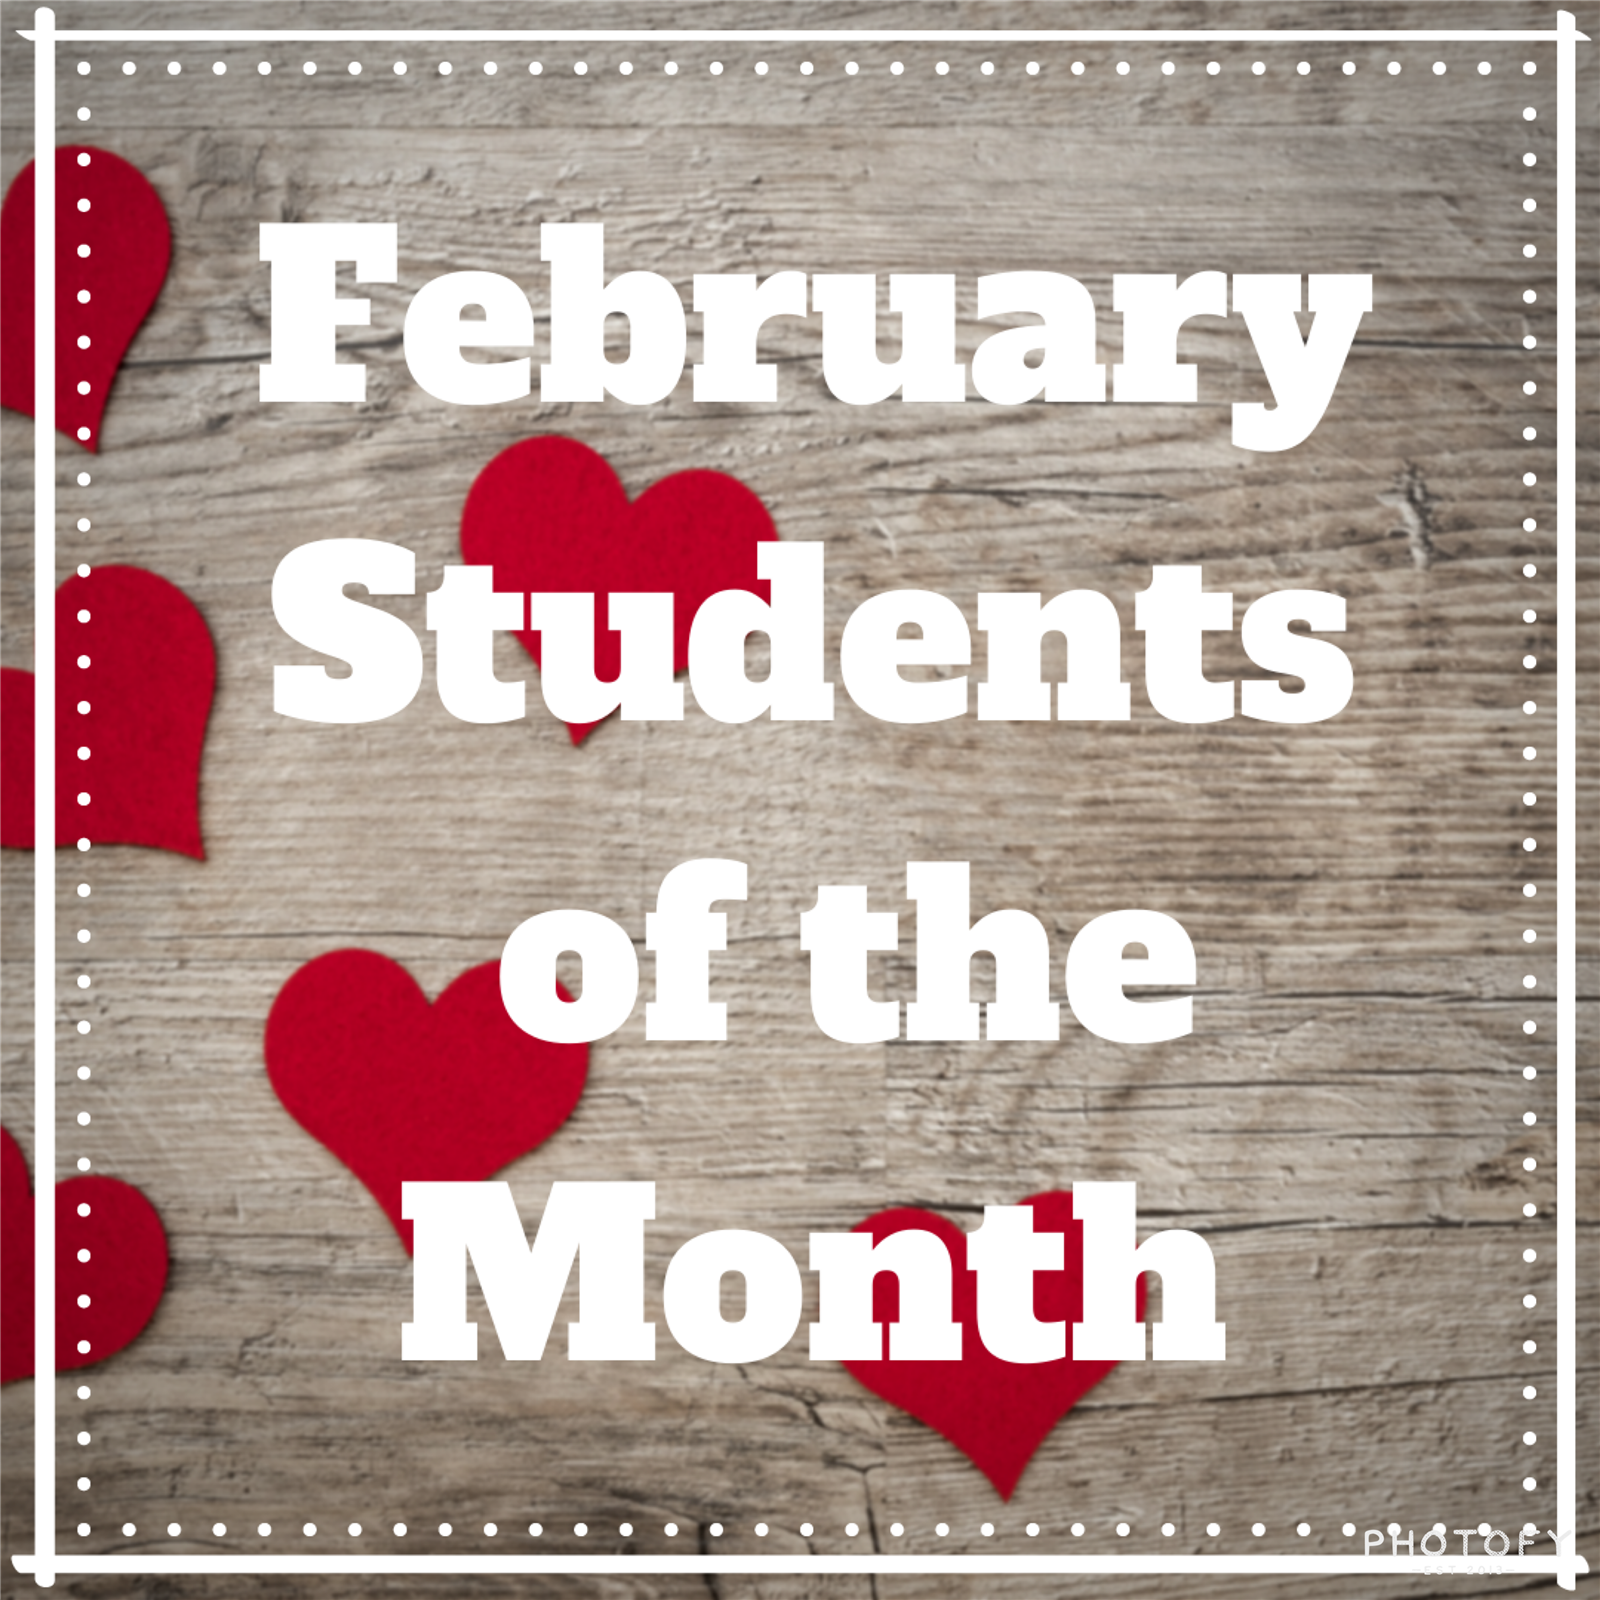 Wooden fence background with red hearts and white words that say February Students of the Month